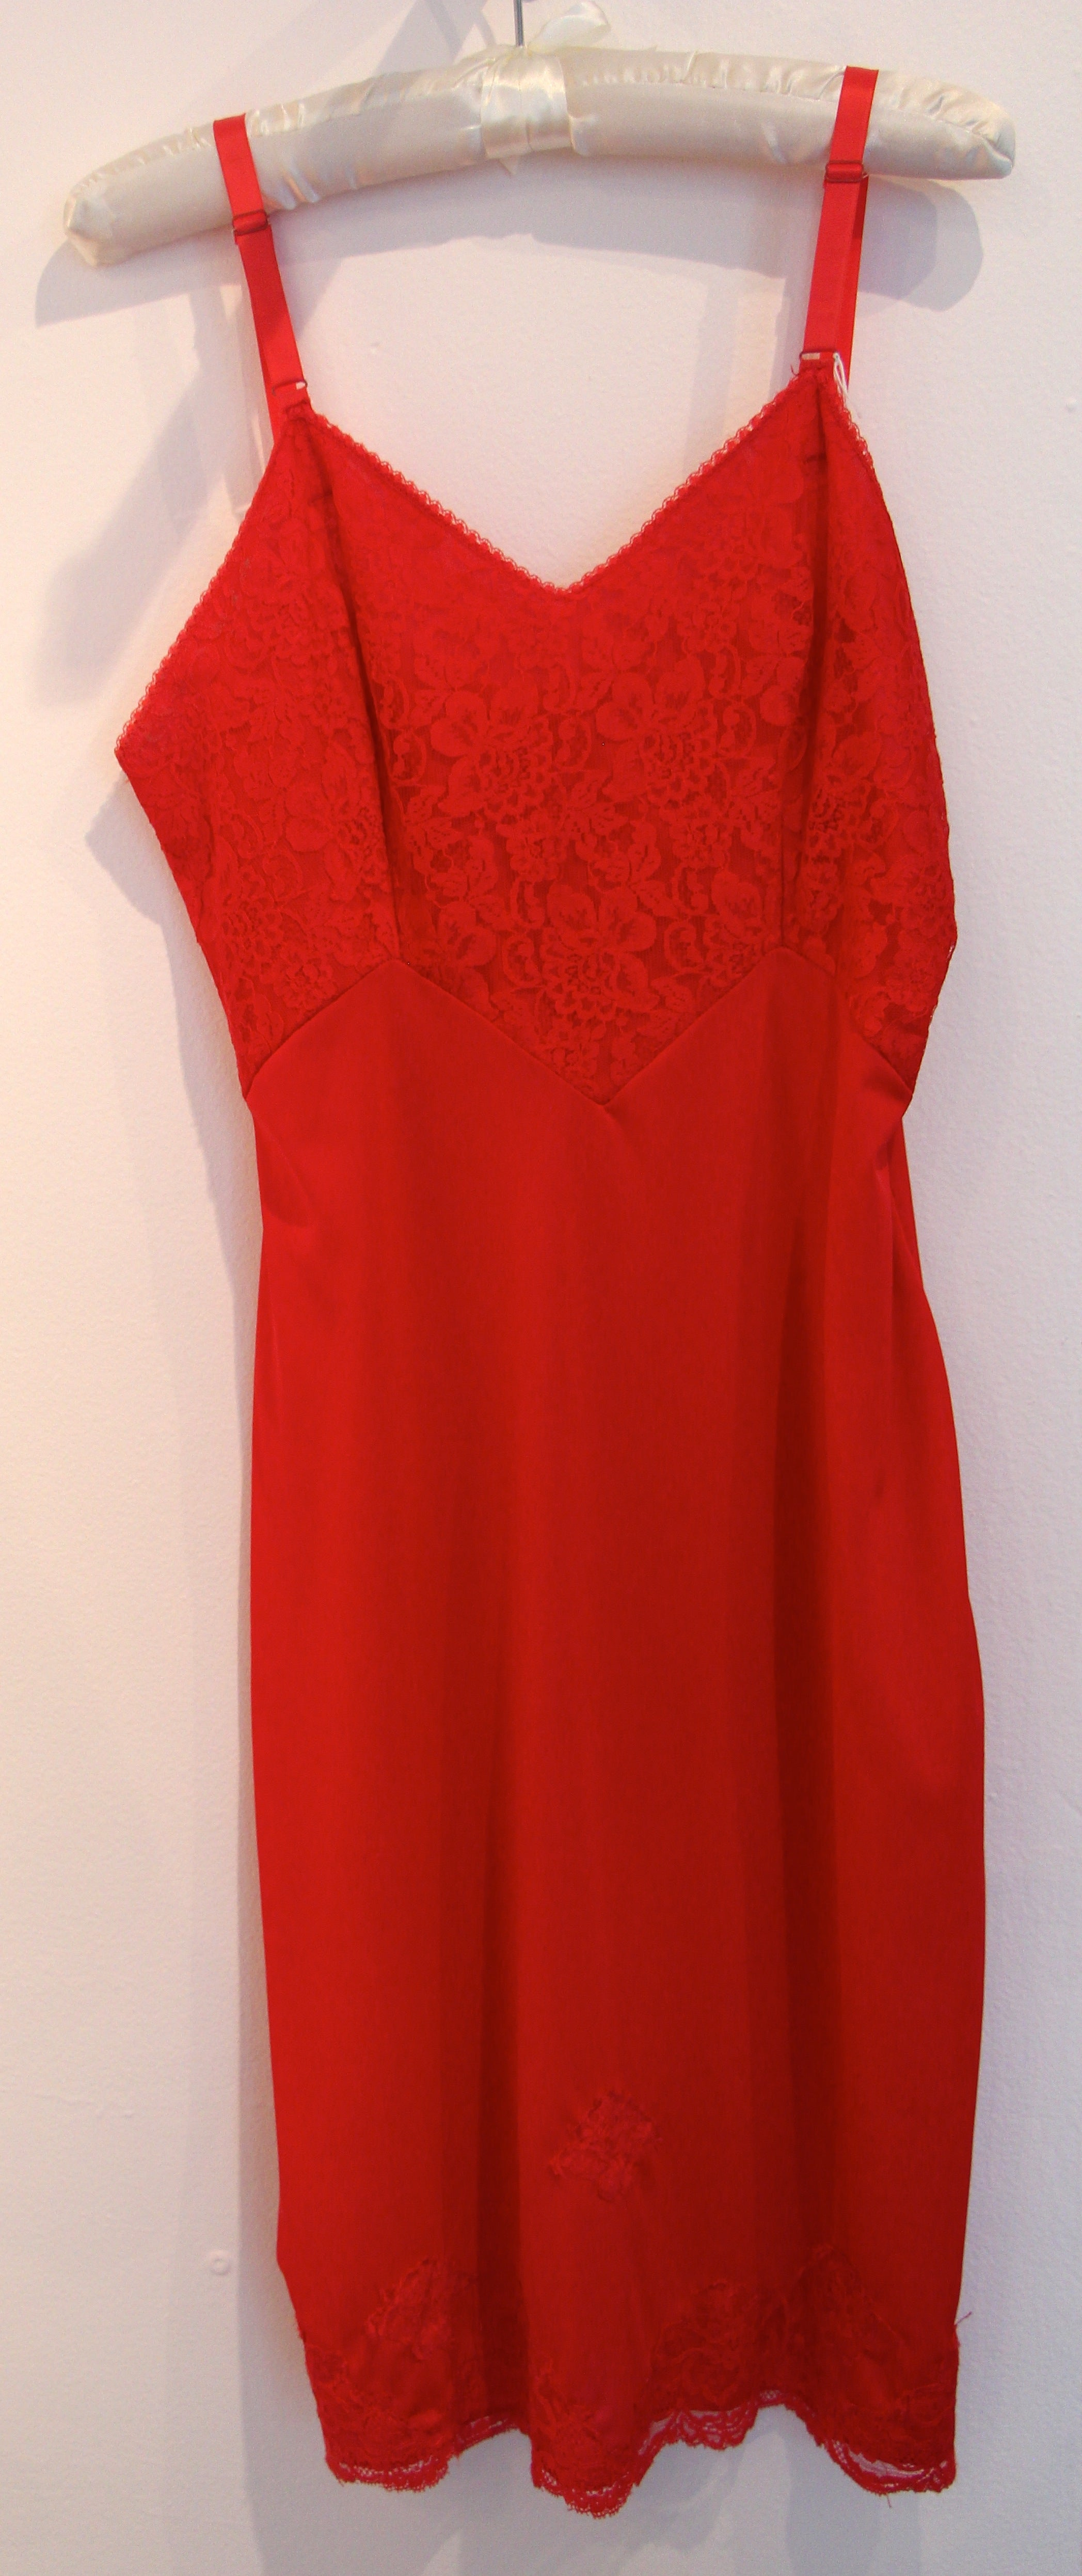 Red Vanity Fair Nyon and Lace Slip Size M/L #020